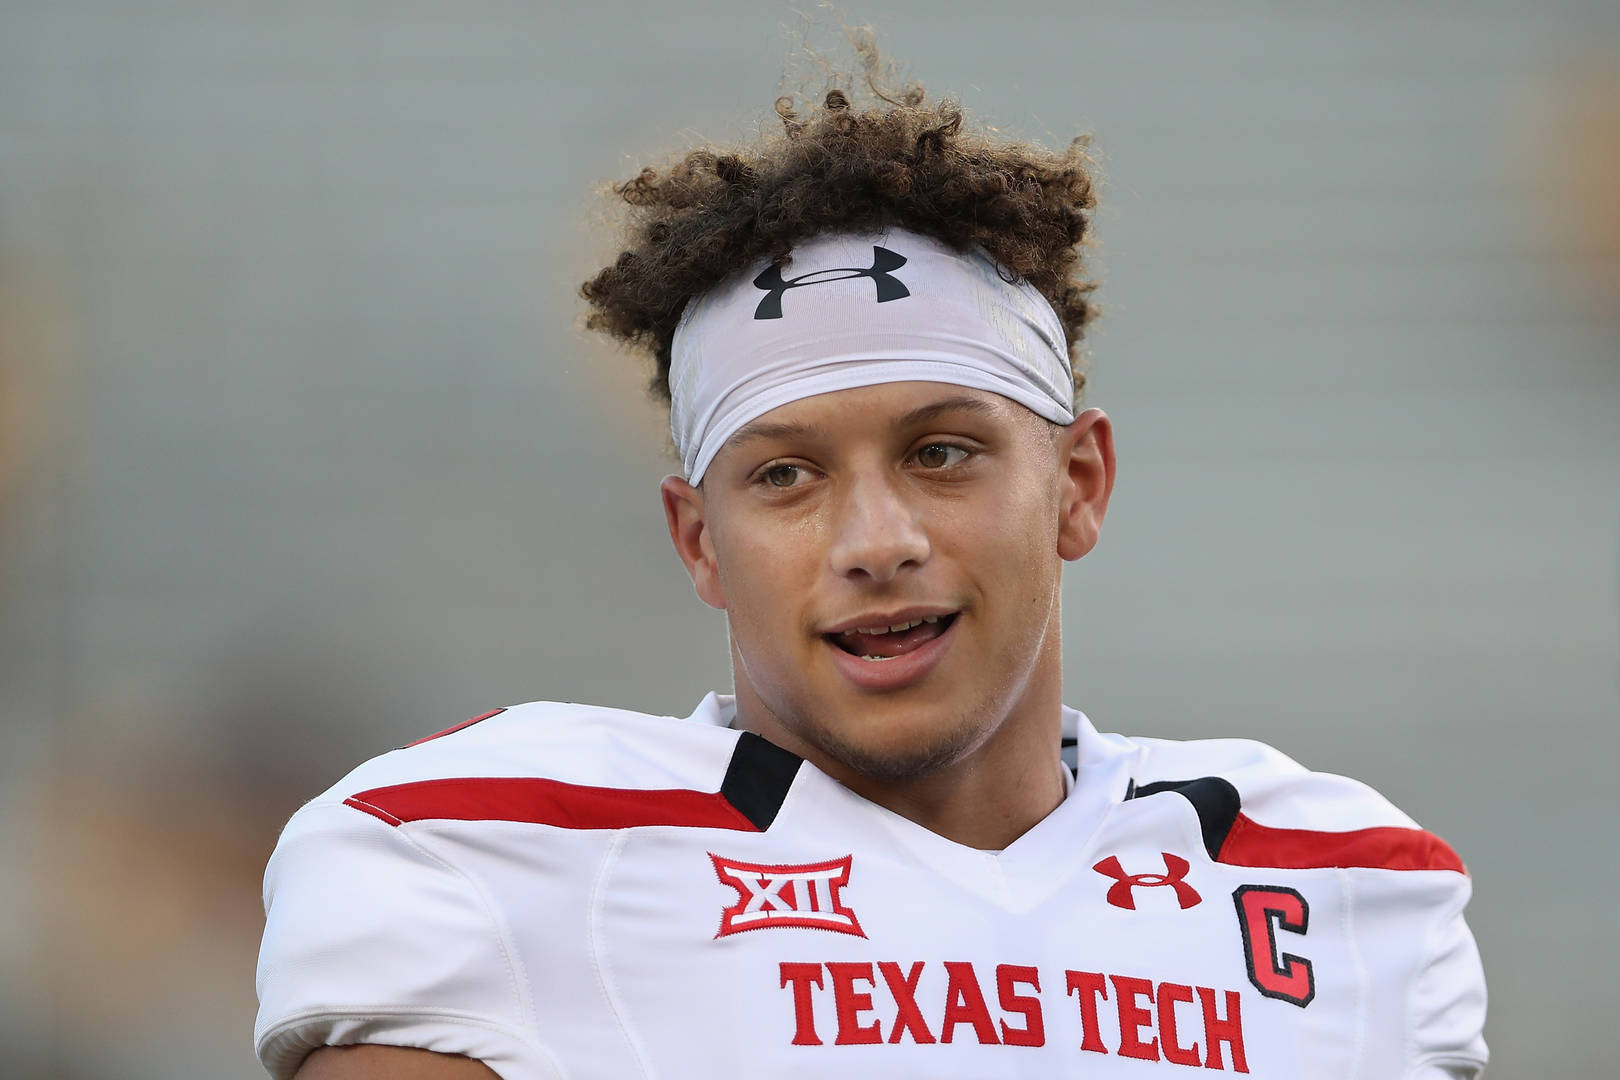 Patrick Mahomes, Texas Tech, Graduation